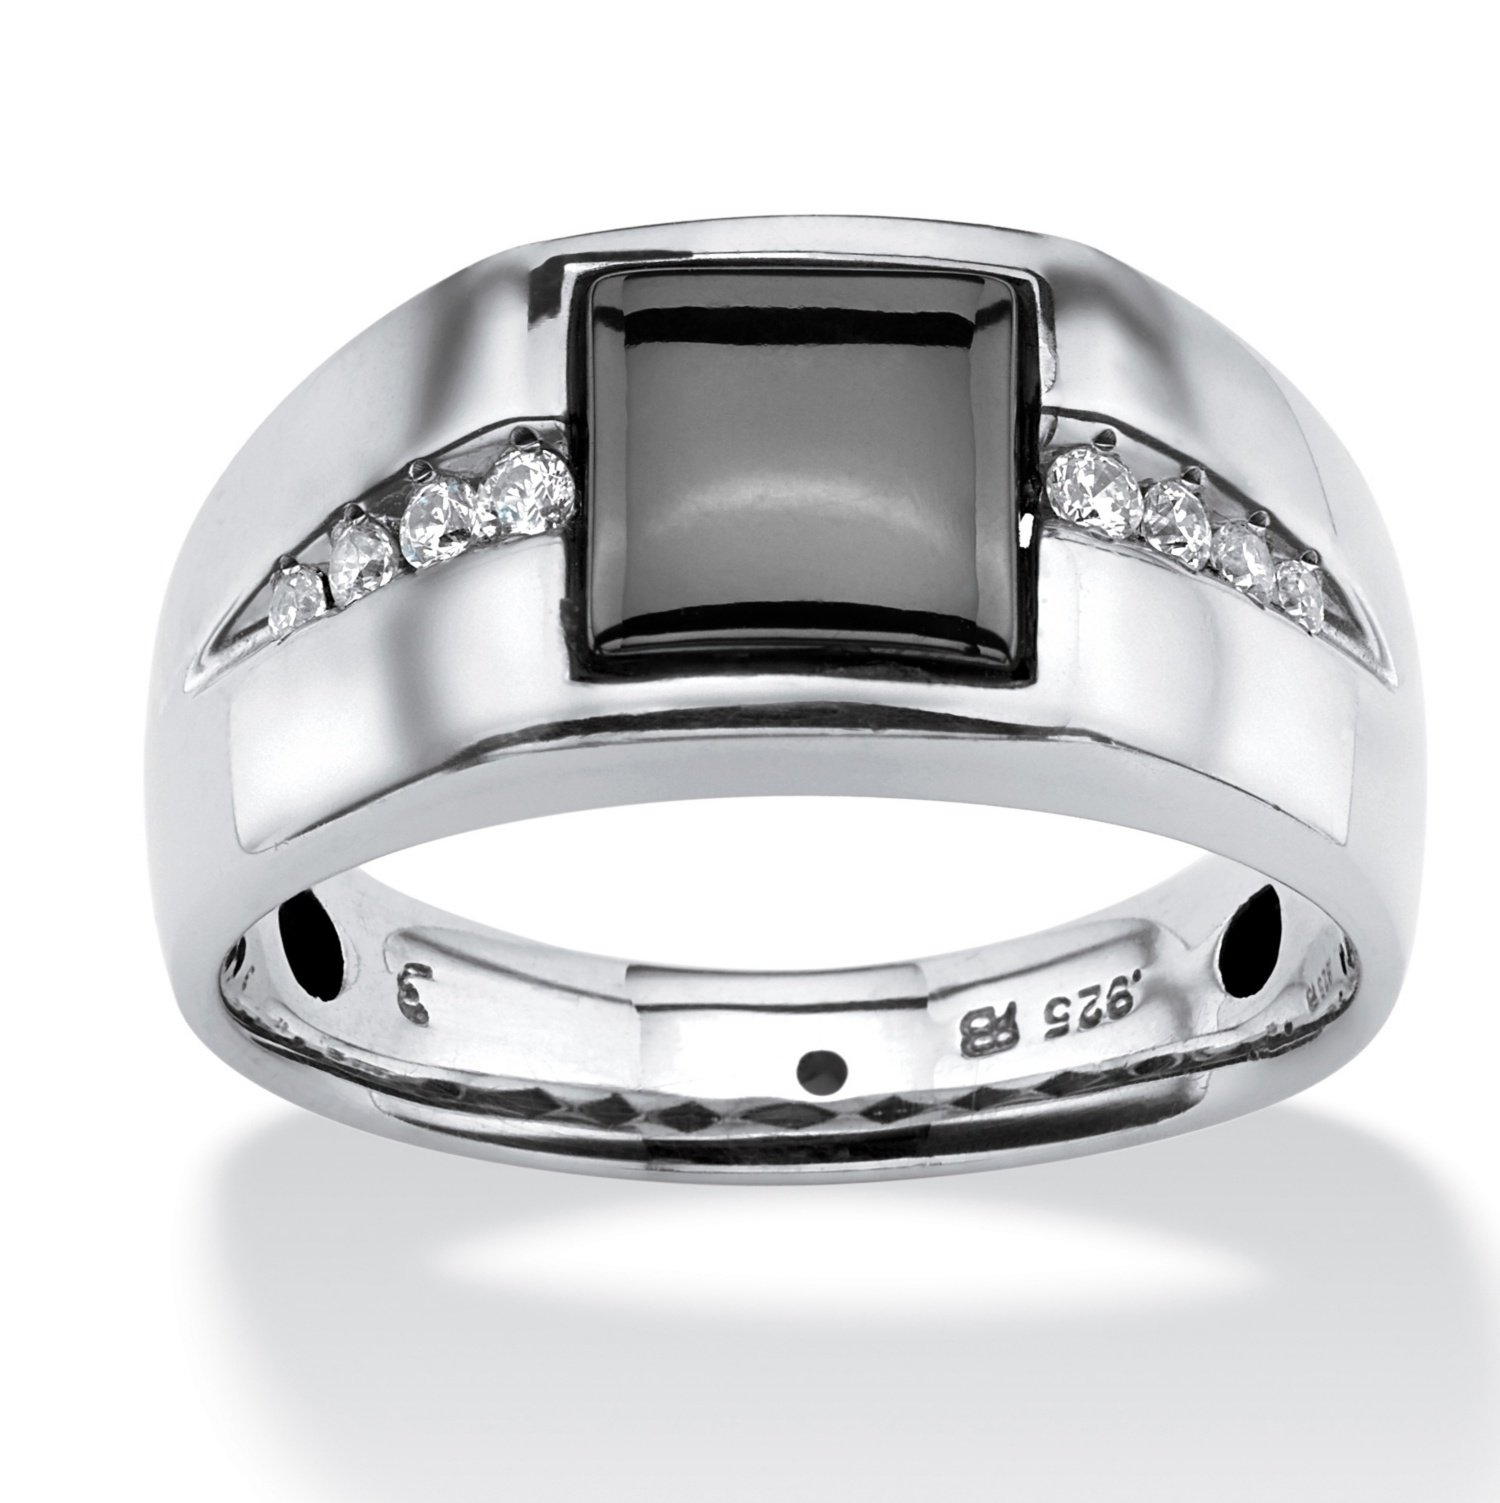 Men's .30 TCW Genuine Hematite and White Sapphire Ring in Platinum Over .925 Sterling Silver by PalmBeach Jewelry